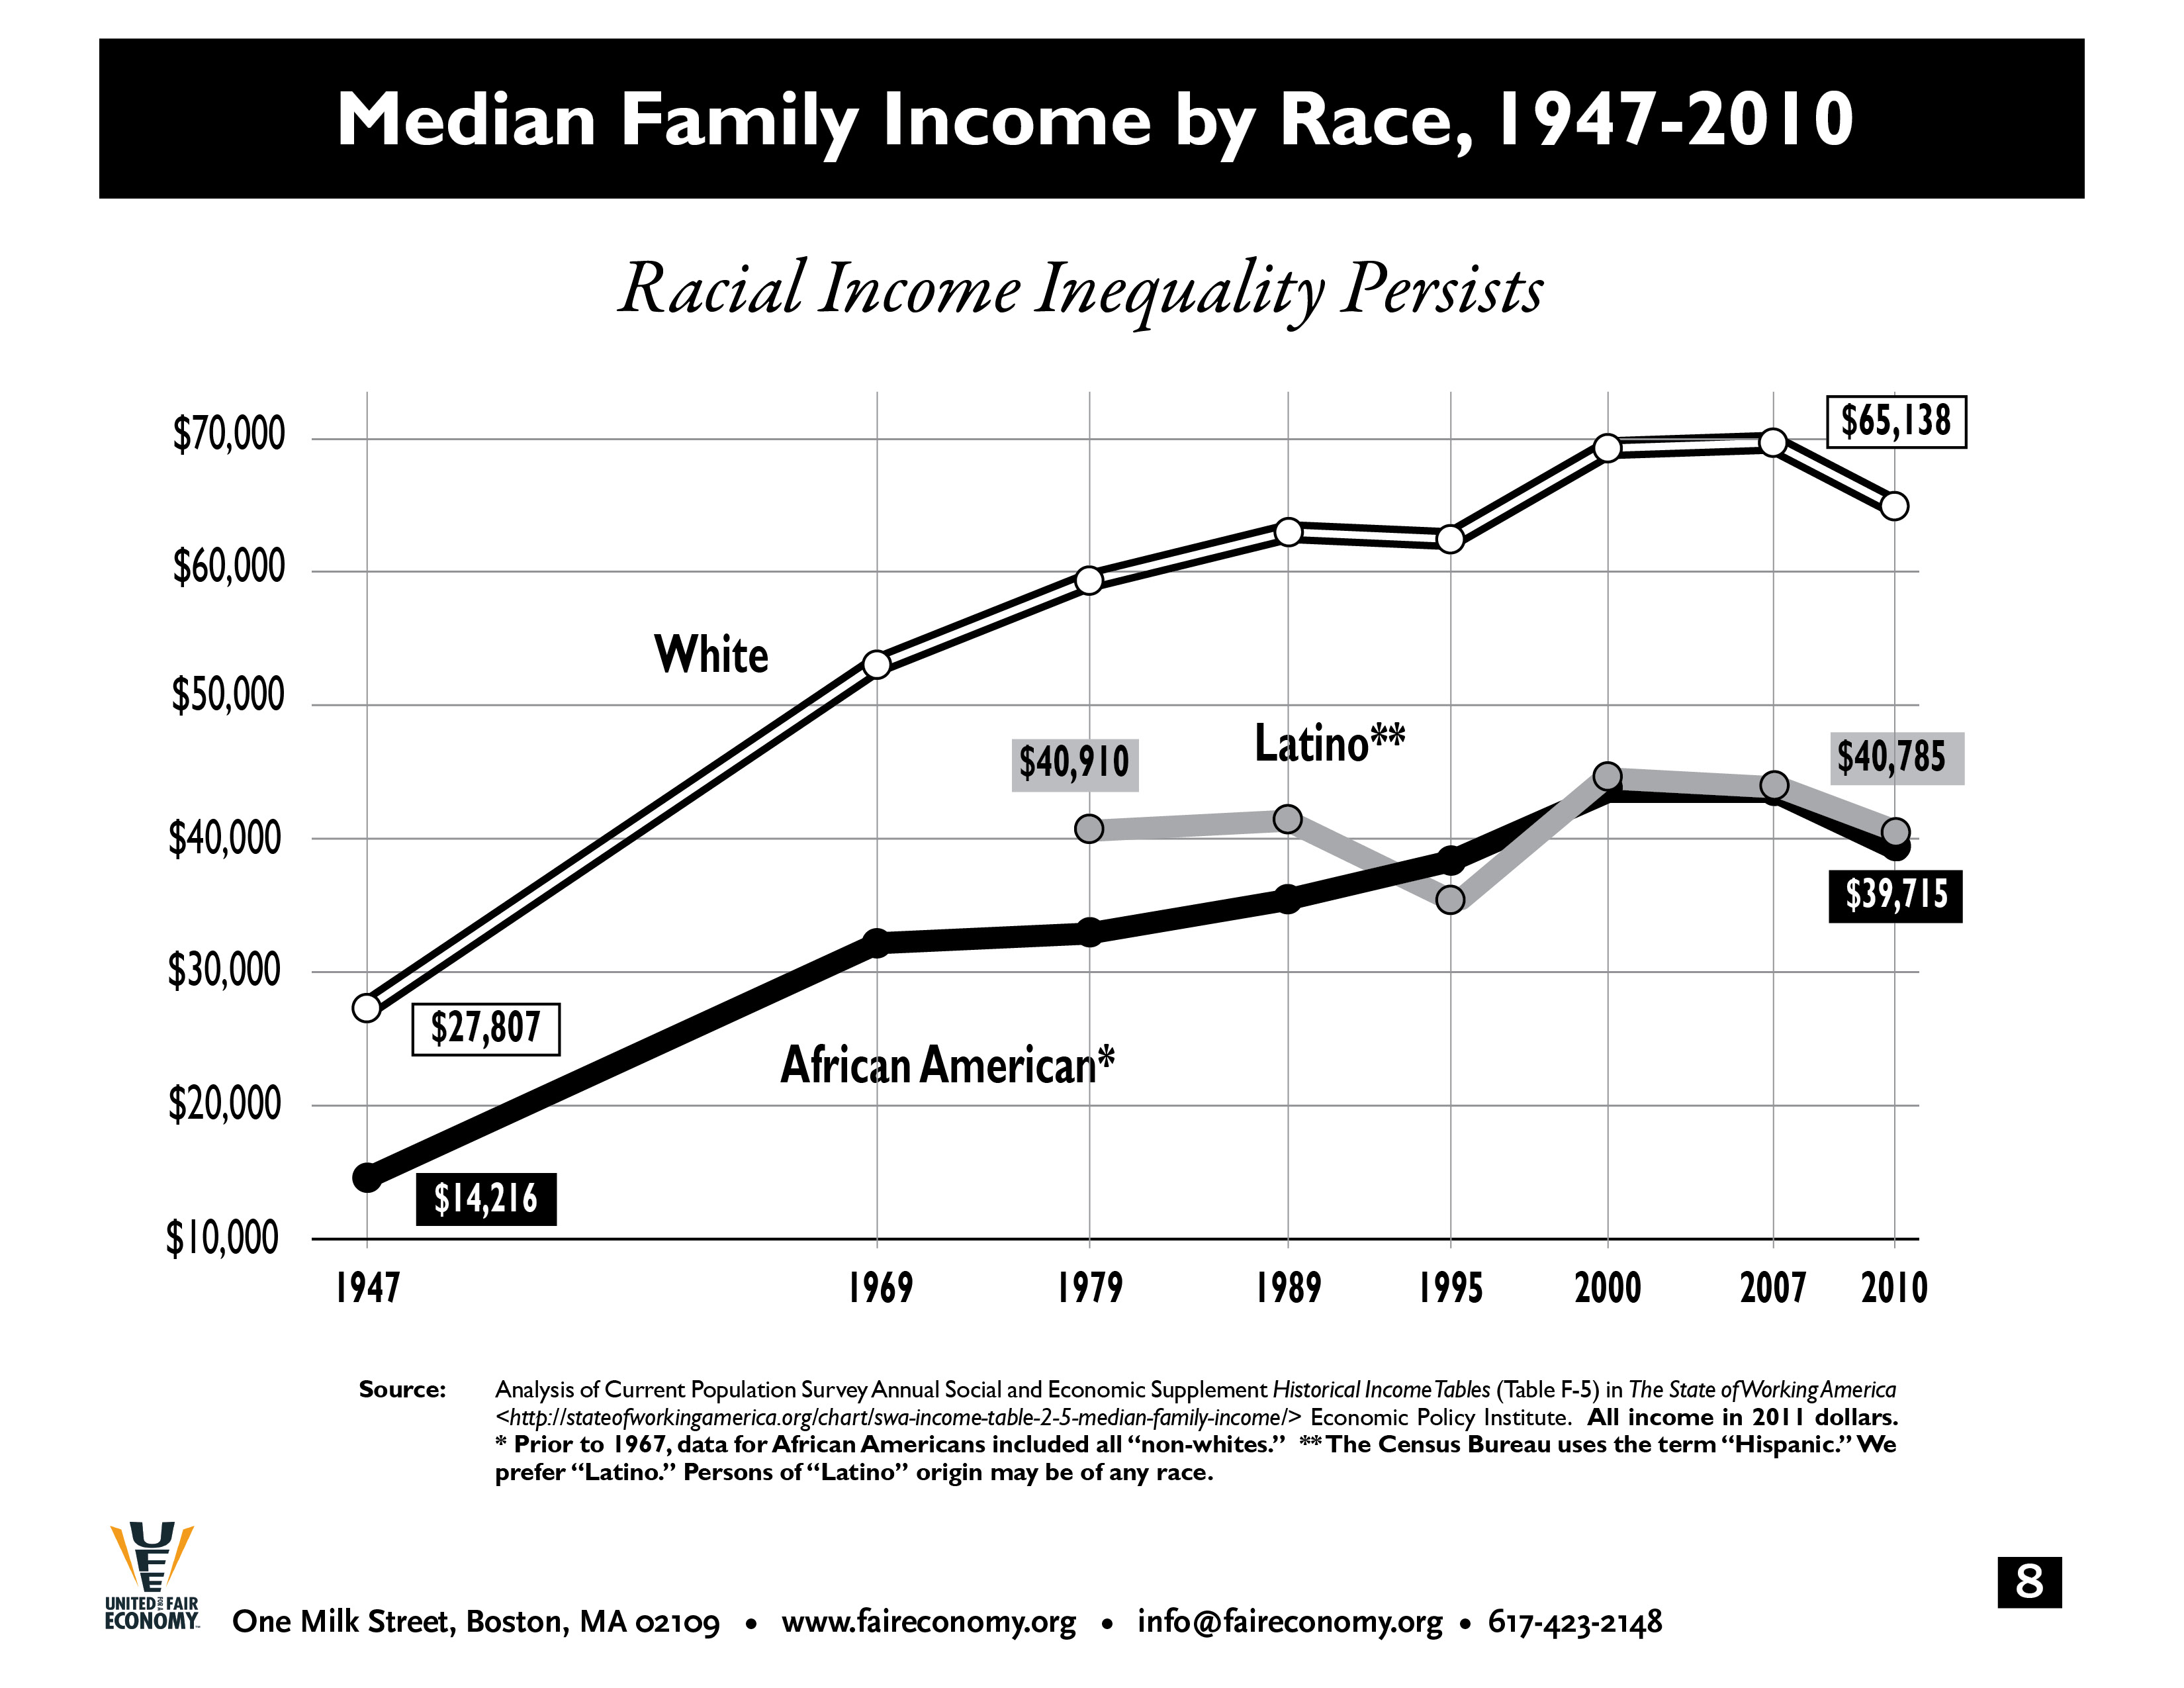 Median_Income_by_Race_1947-2010.jpg